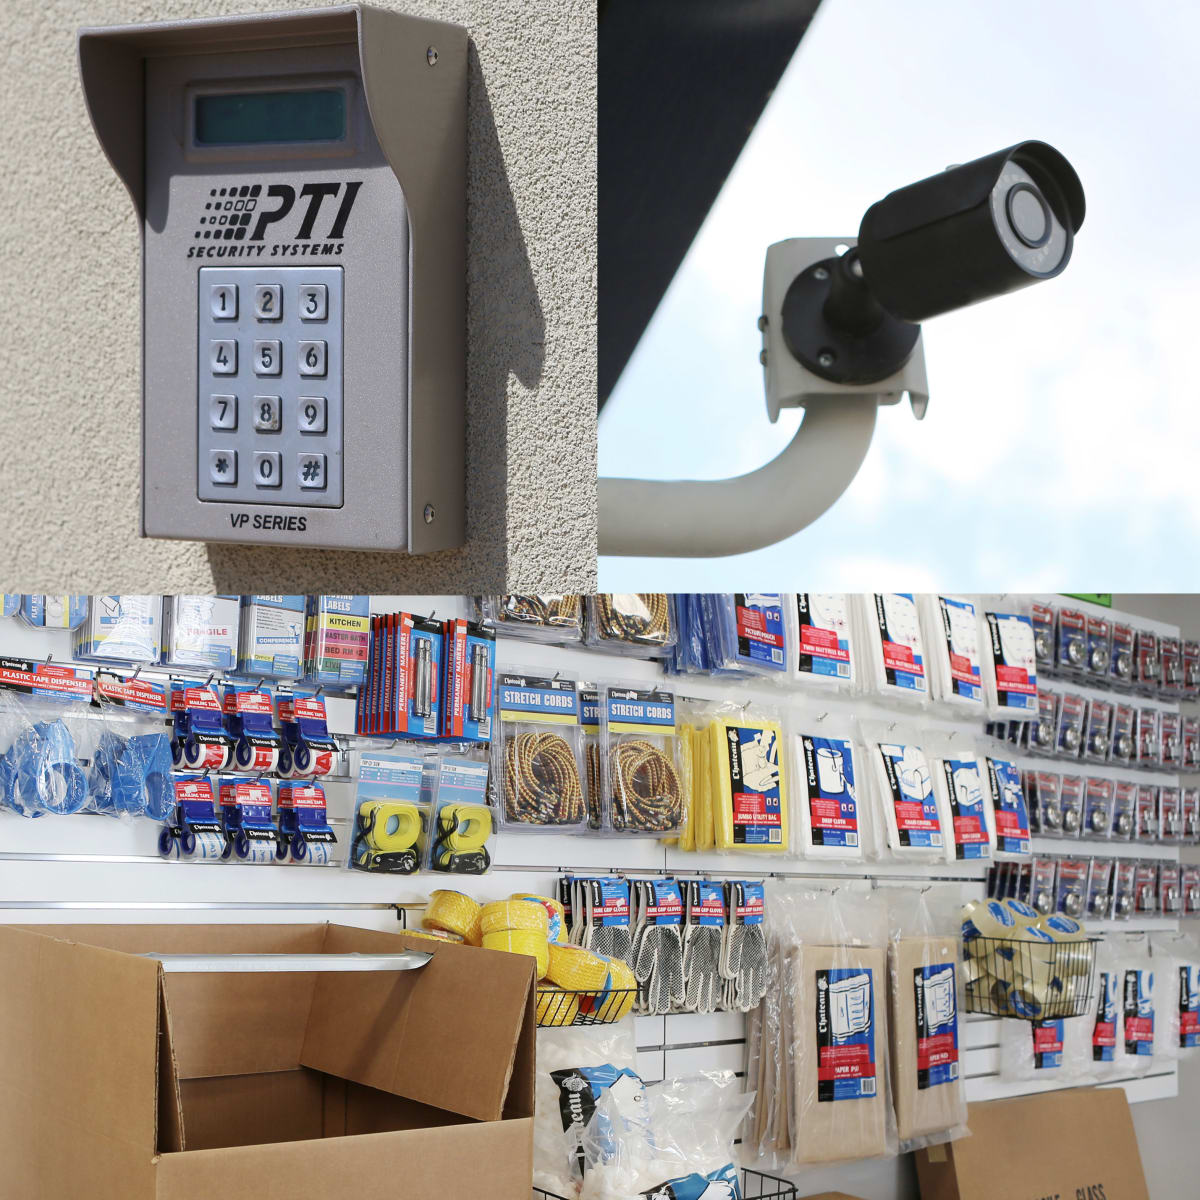 We provide 24 hour security monitoring and sell various moving and packing supplies at Midgard Self Storage in Naples, Florida